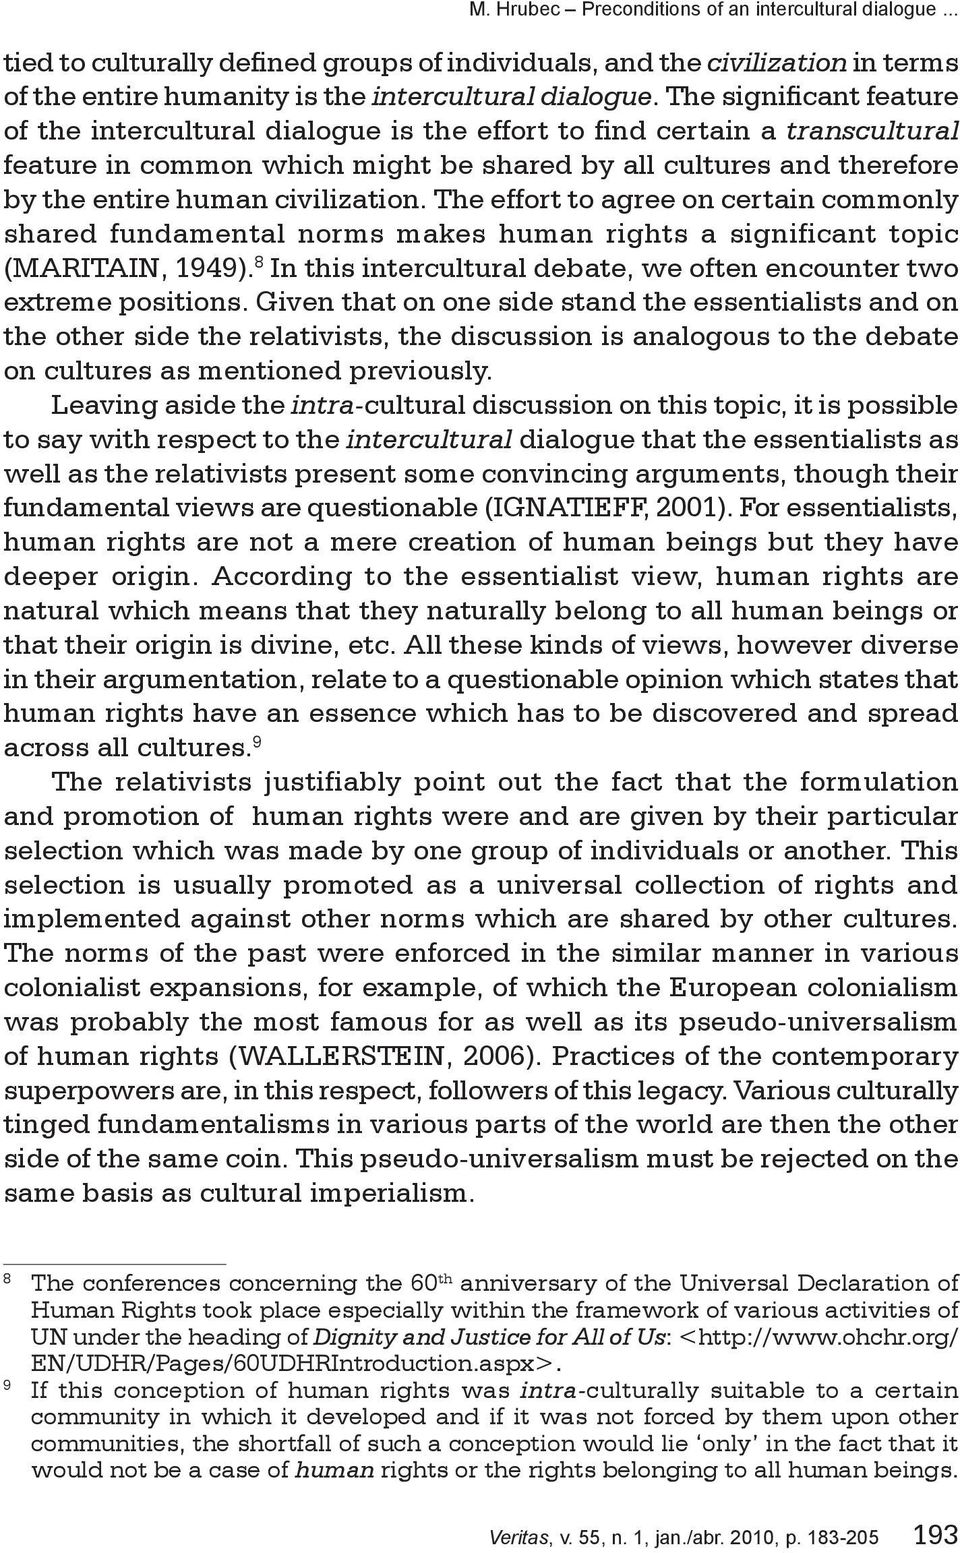 civilization. The effort to agree on certain commonly shared fundamental norms makes human rights a significant topic (Maritain, 1949).